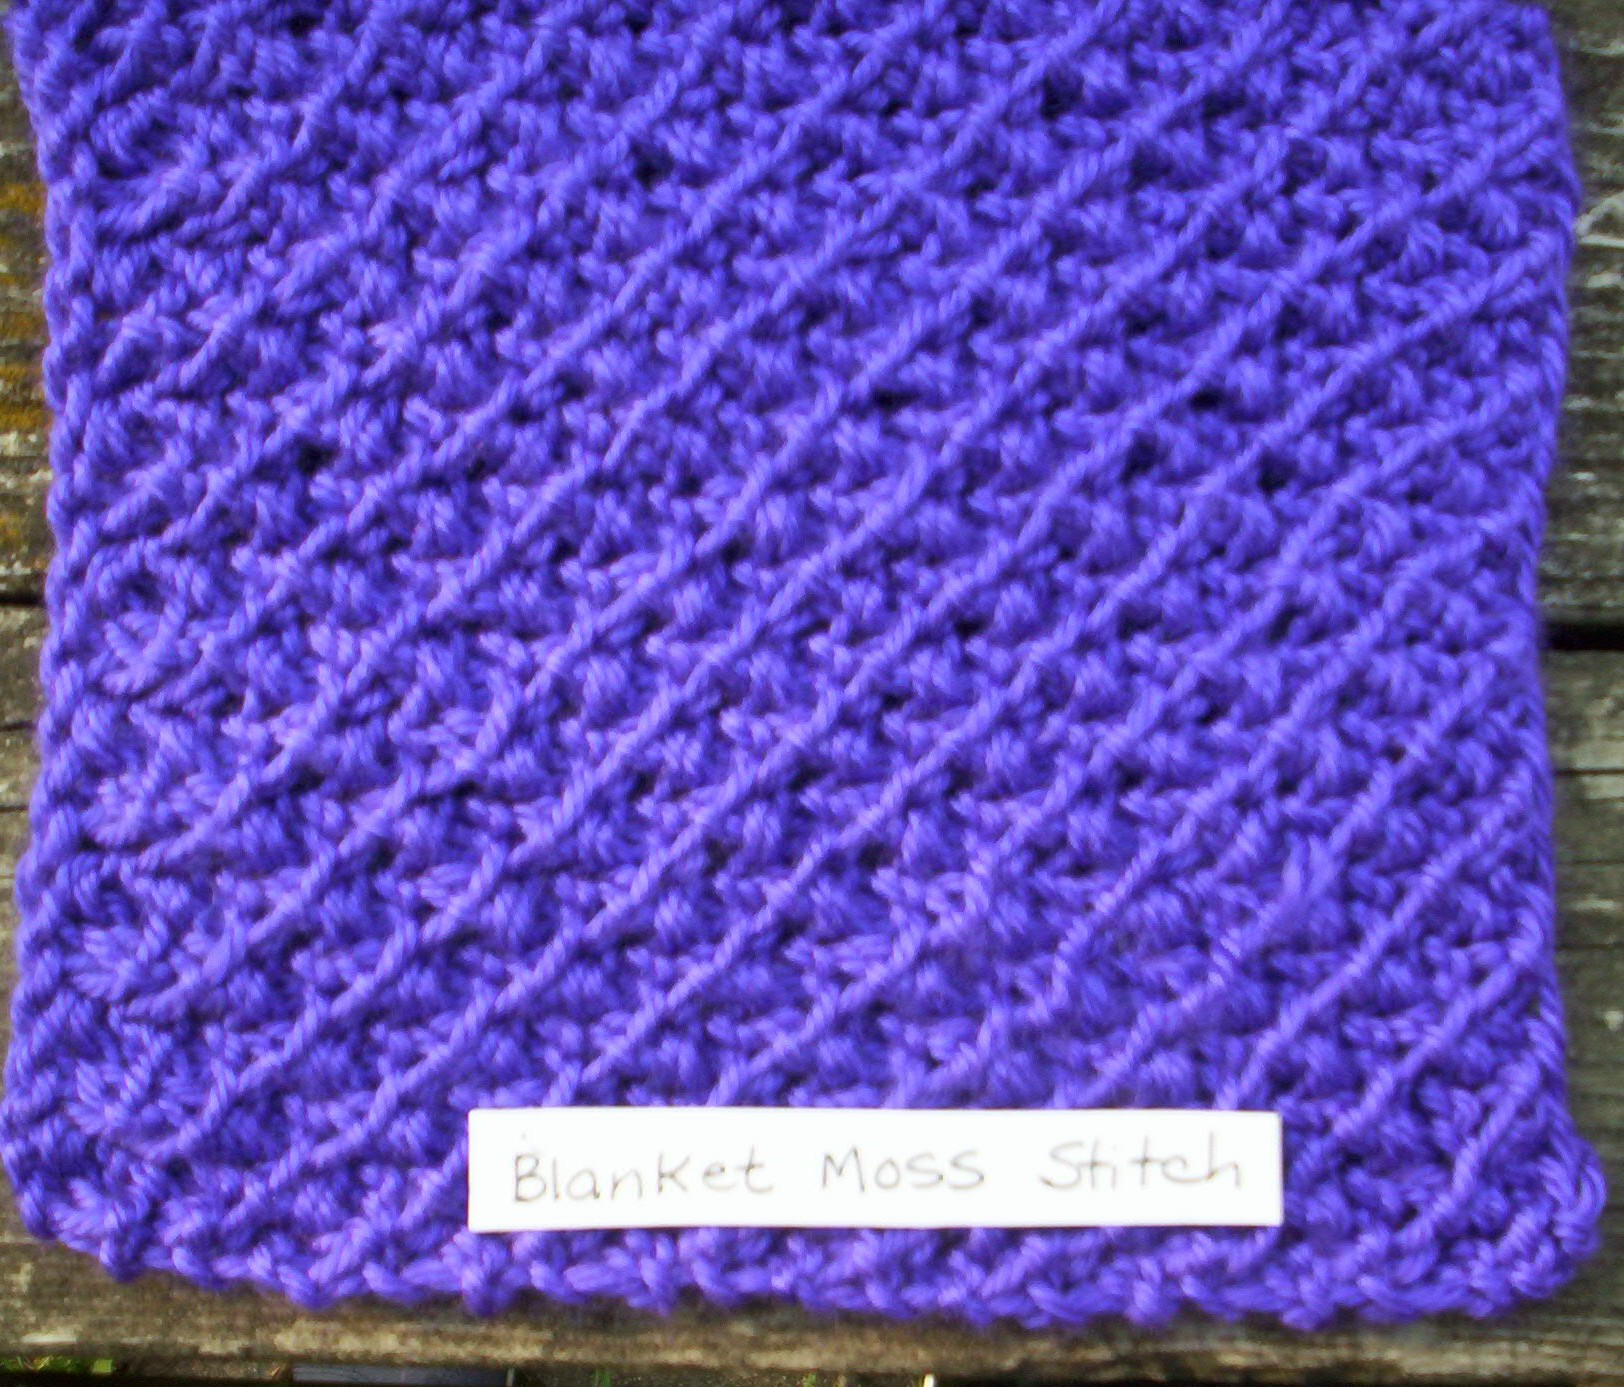 Knitting Patterns For Squares : 100_0800.jpg